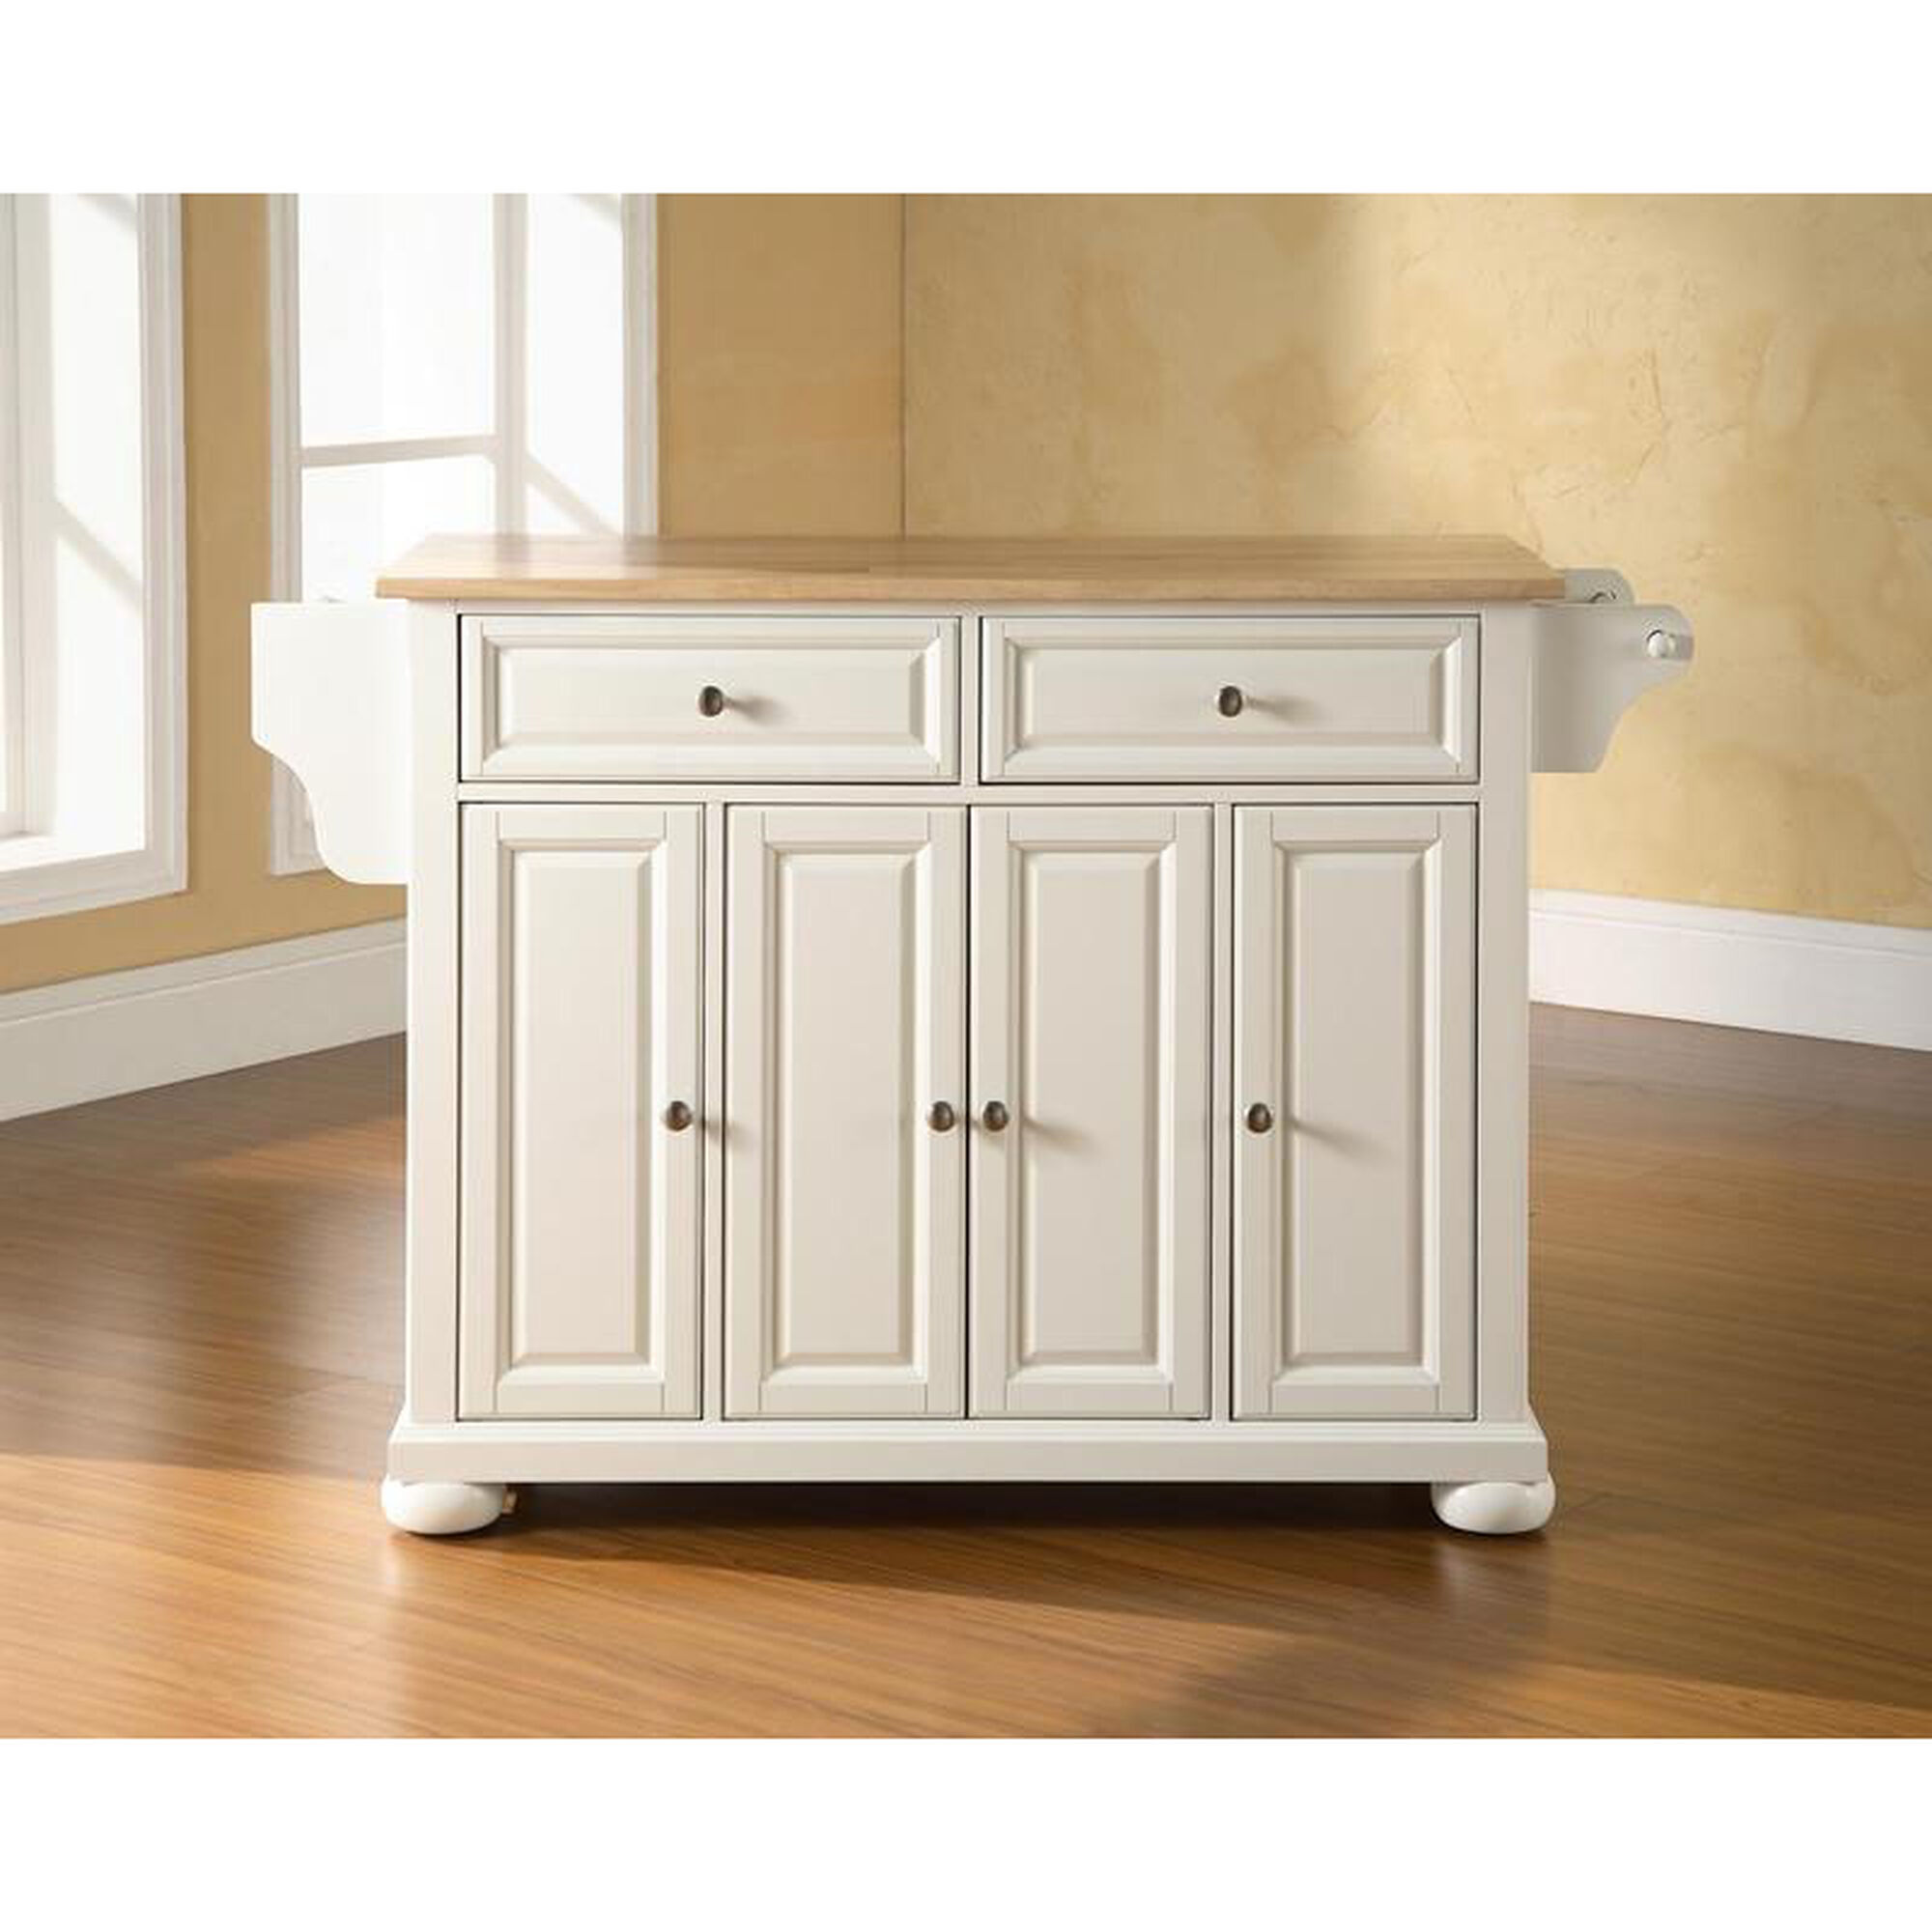 Our Natural Wood Top Kitchen Island With Alexandria Style